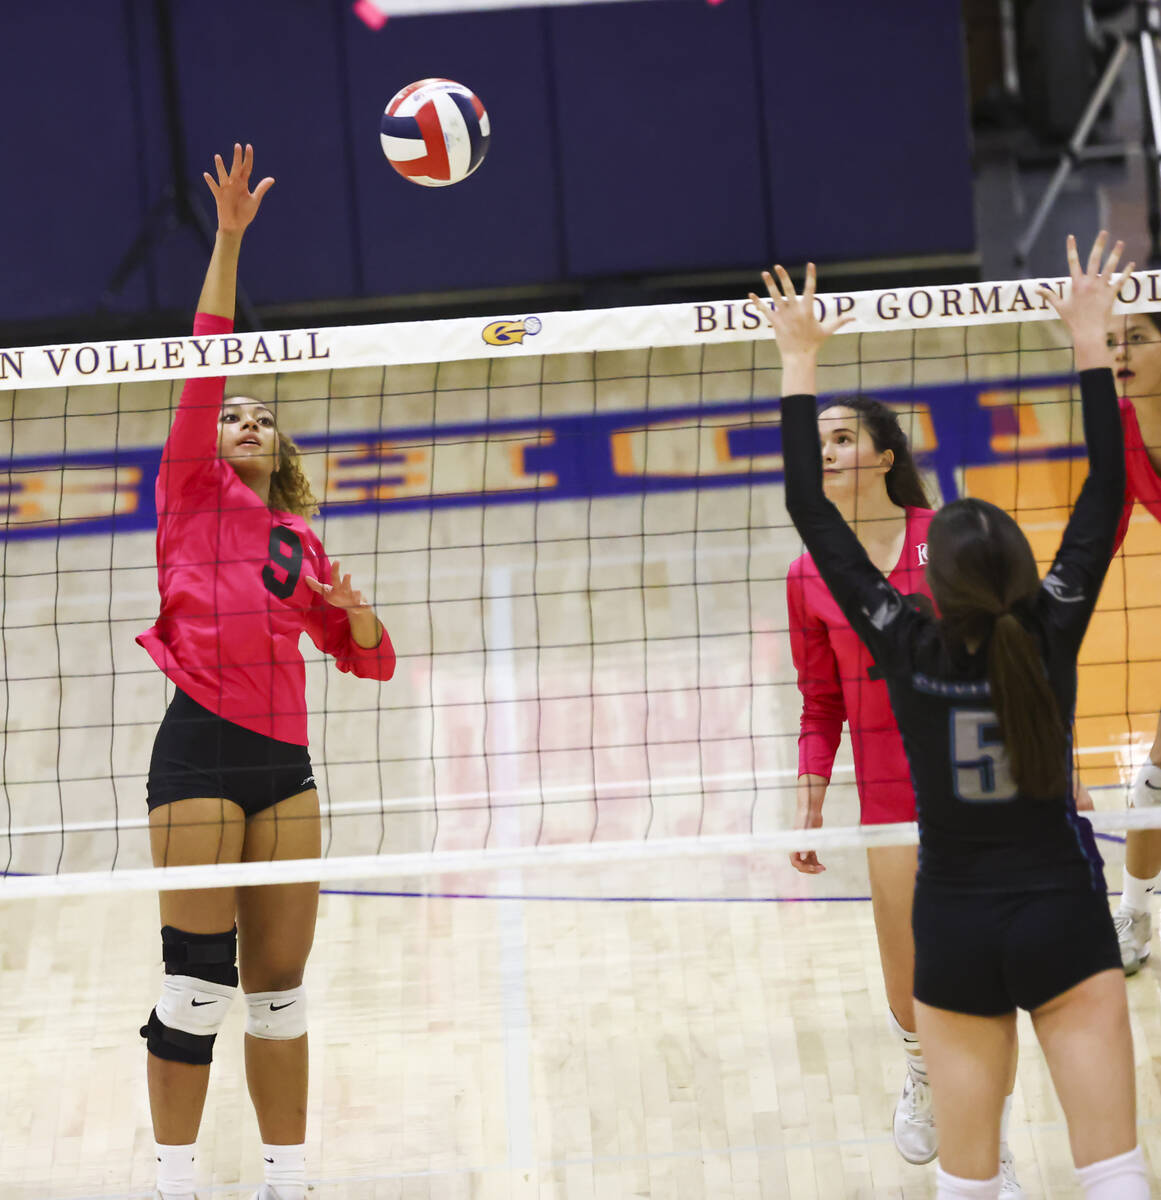 Bishop Gorman's outside hitter Imani Dambreville (9) hits the ball during a volleyball game at ...